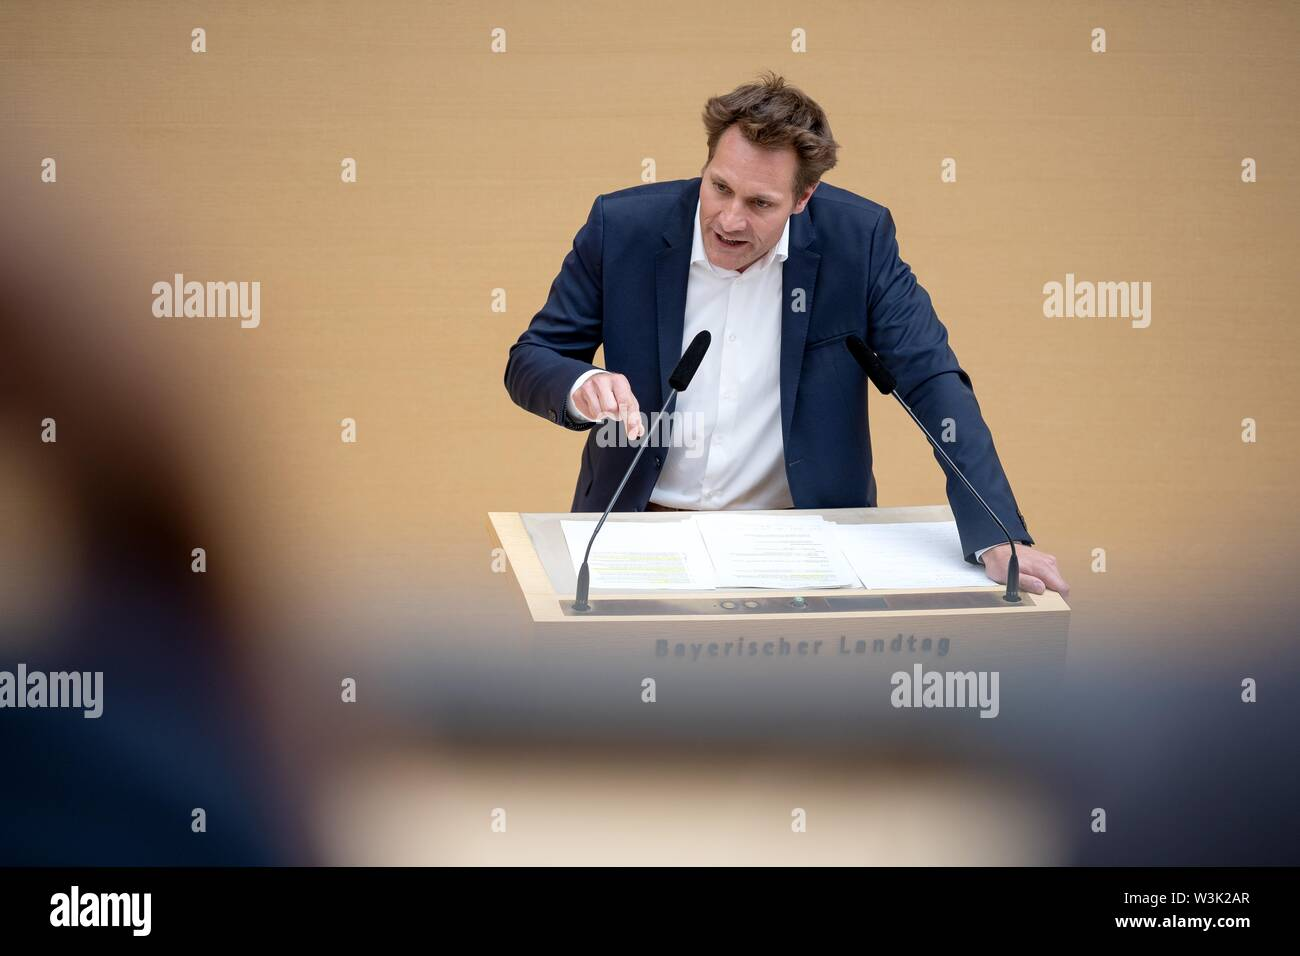 Munich, Germany. 16th July, 2019. Ludwig Hartmann (Bündnis 90/Die Grünen) speaks at a plenary session in the Landtag. Topics include land consumption in Bavaria and a green draft for a Bavarian climate law. Credit: Sina Schuldt/dpa/Alamy Live News - Stock Image